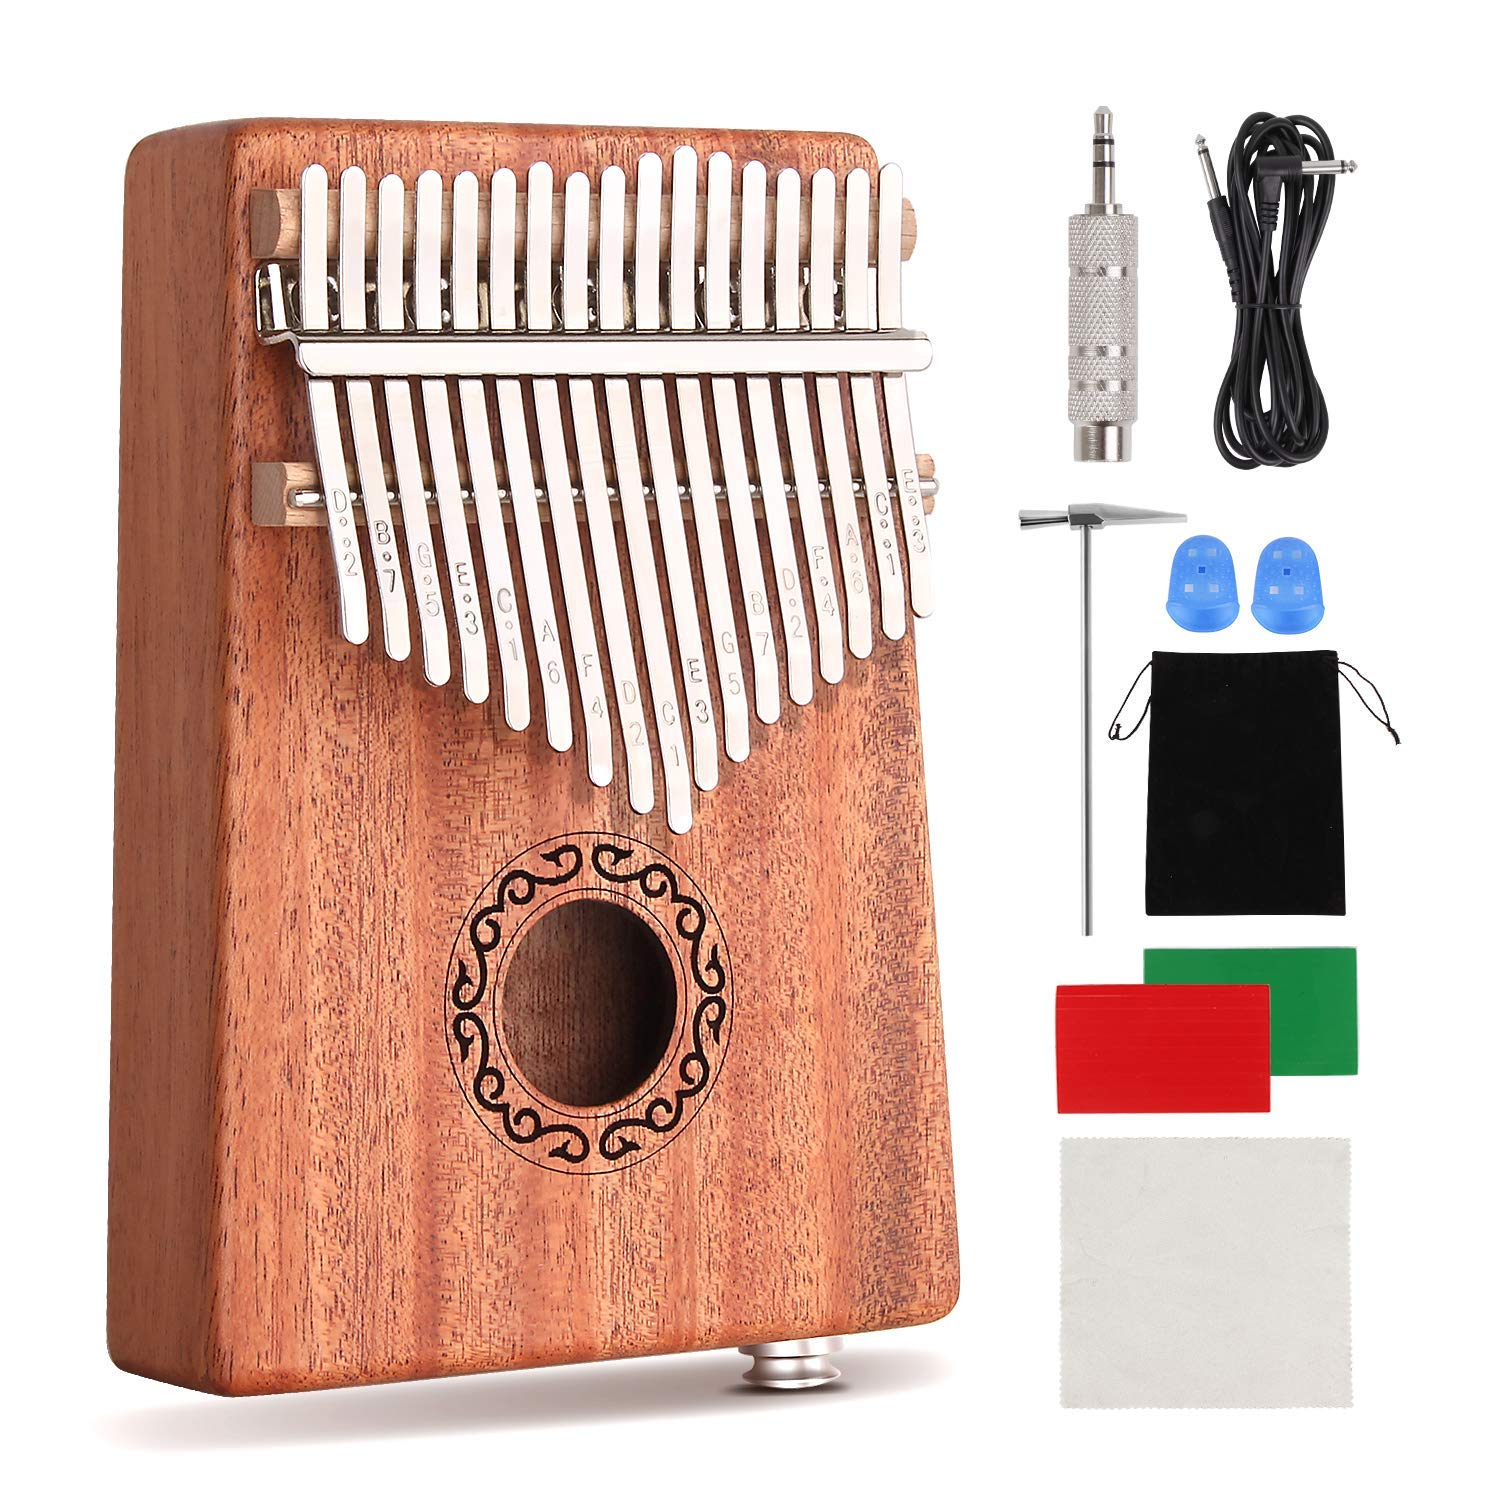 KMIKE 17 Keys Kalimba Thumb Piano Solid Mahogany Wood Finger Piano with Study Instruction and Tune Hammer for Kids Adult Beginners, Professionals - Perfect Christmas Gift by KMiKE